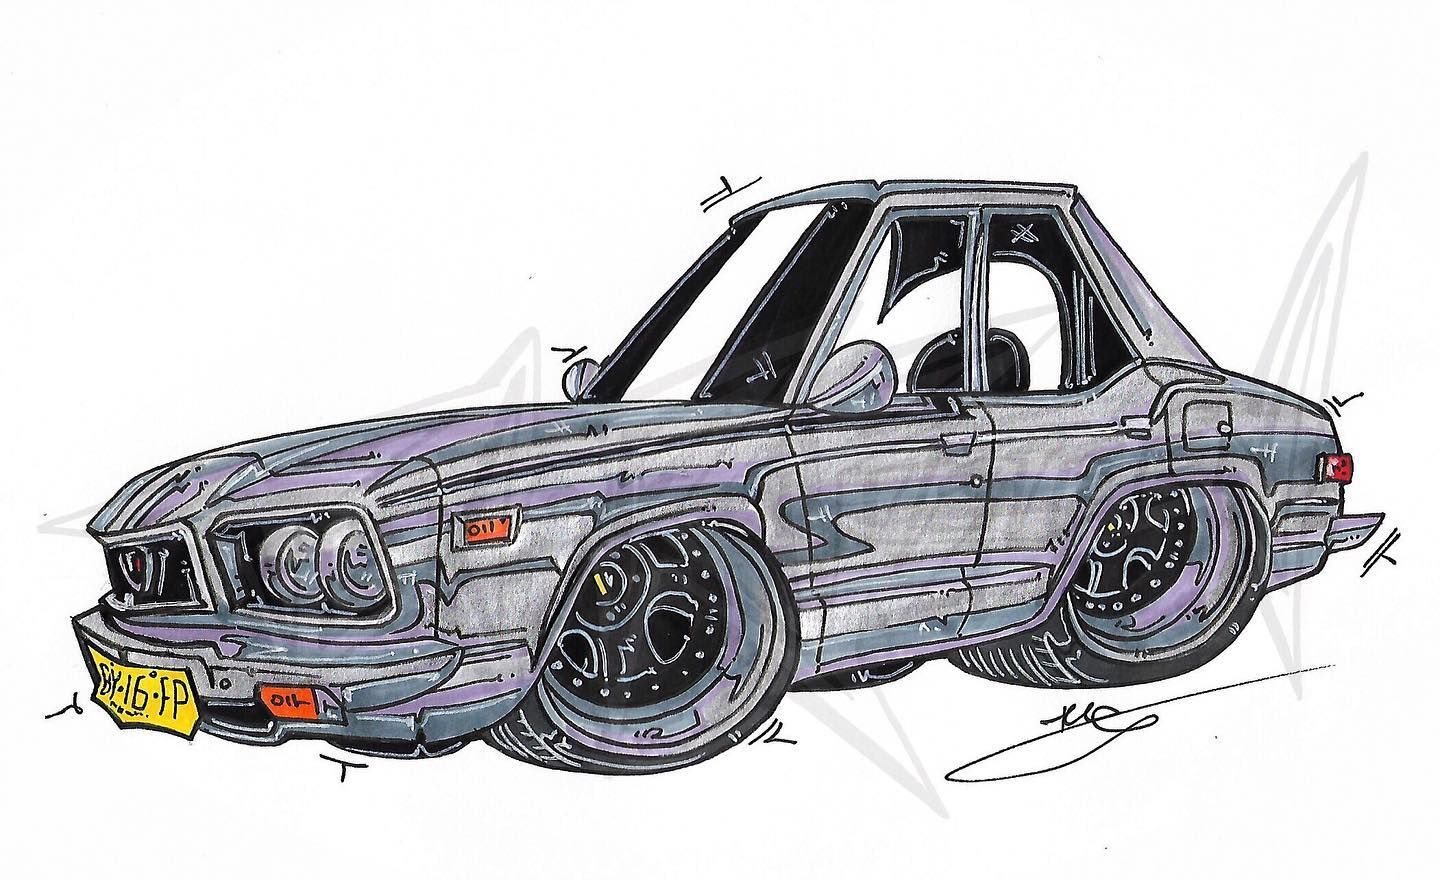 A lovely Aussie style rotary commissioned by @scrramm #rotary #rx3 #13b #wankel #simmons #rotaryrevival #drawing #cardrawing